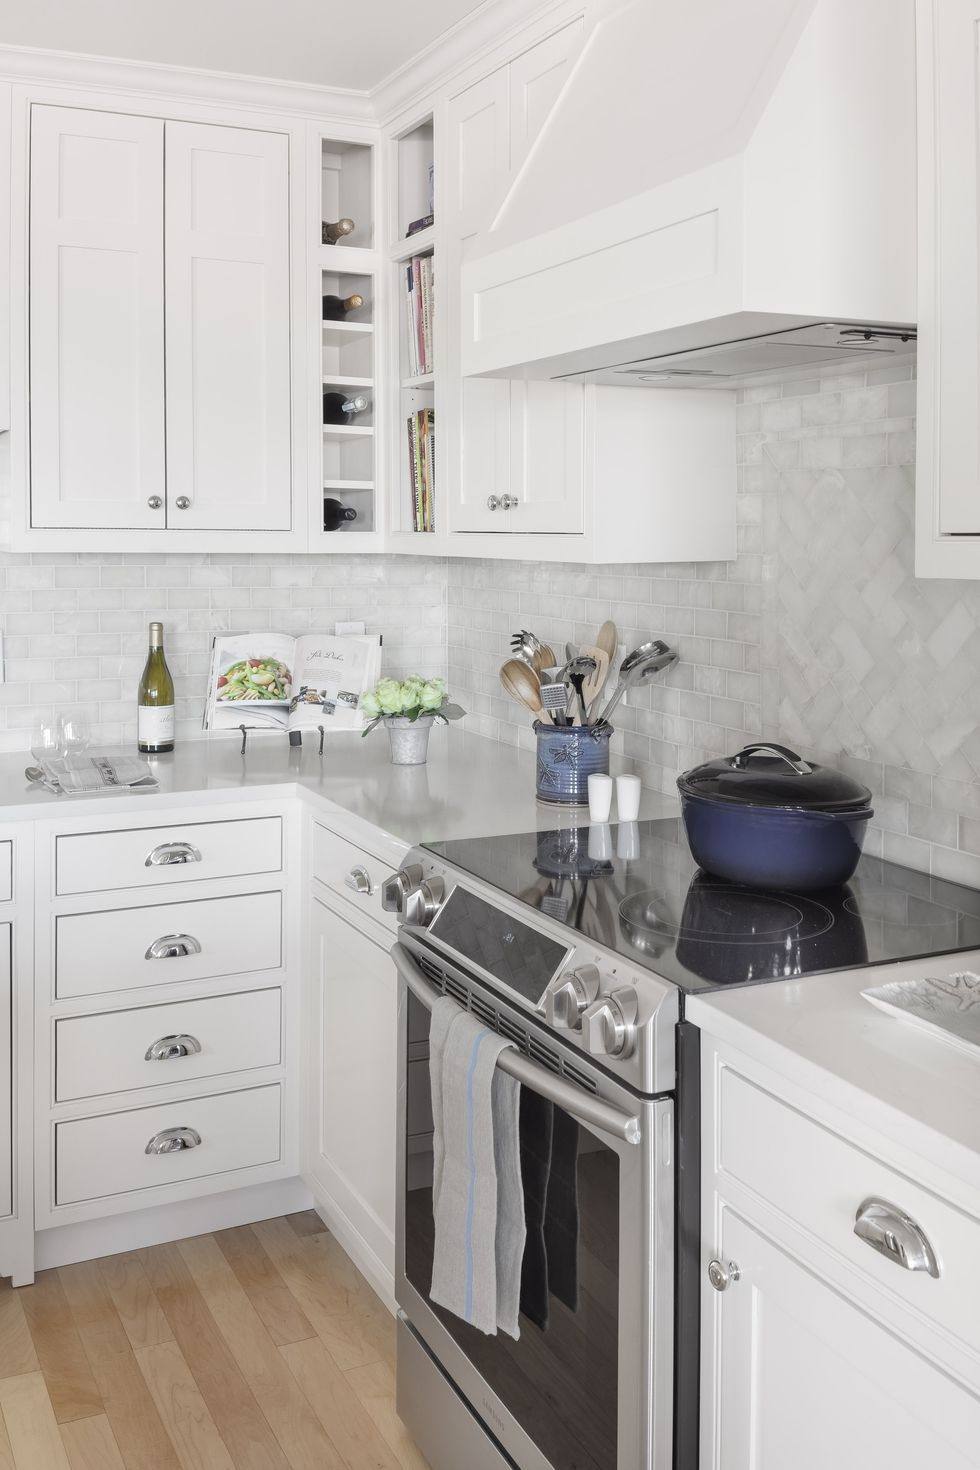 White kitchens white kitchens BIZKRLG